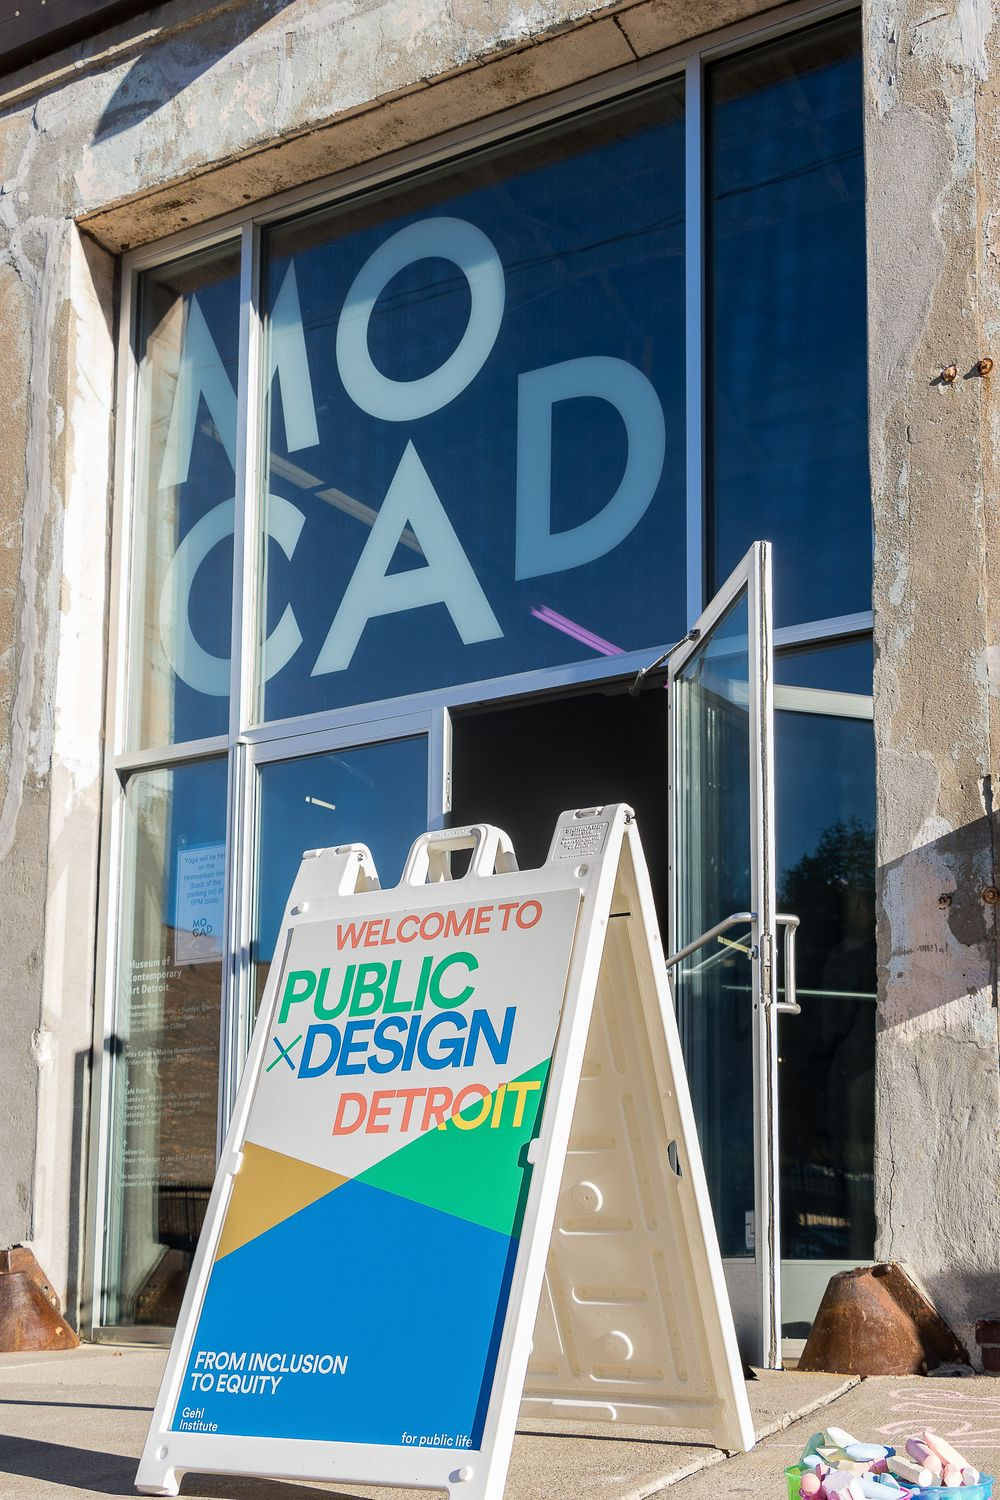 Entrance to MOCAD in Detroit where a public design conference is taking place.